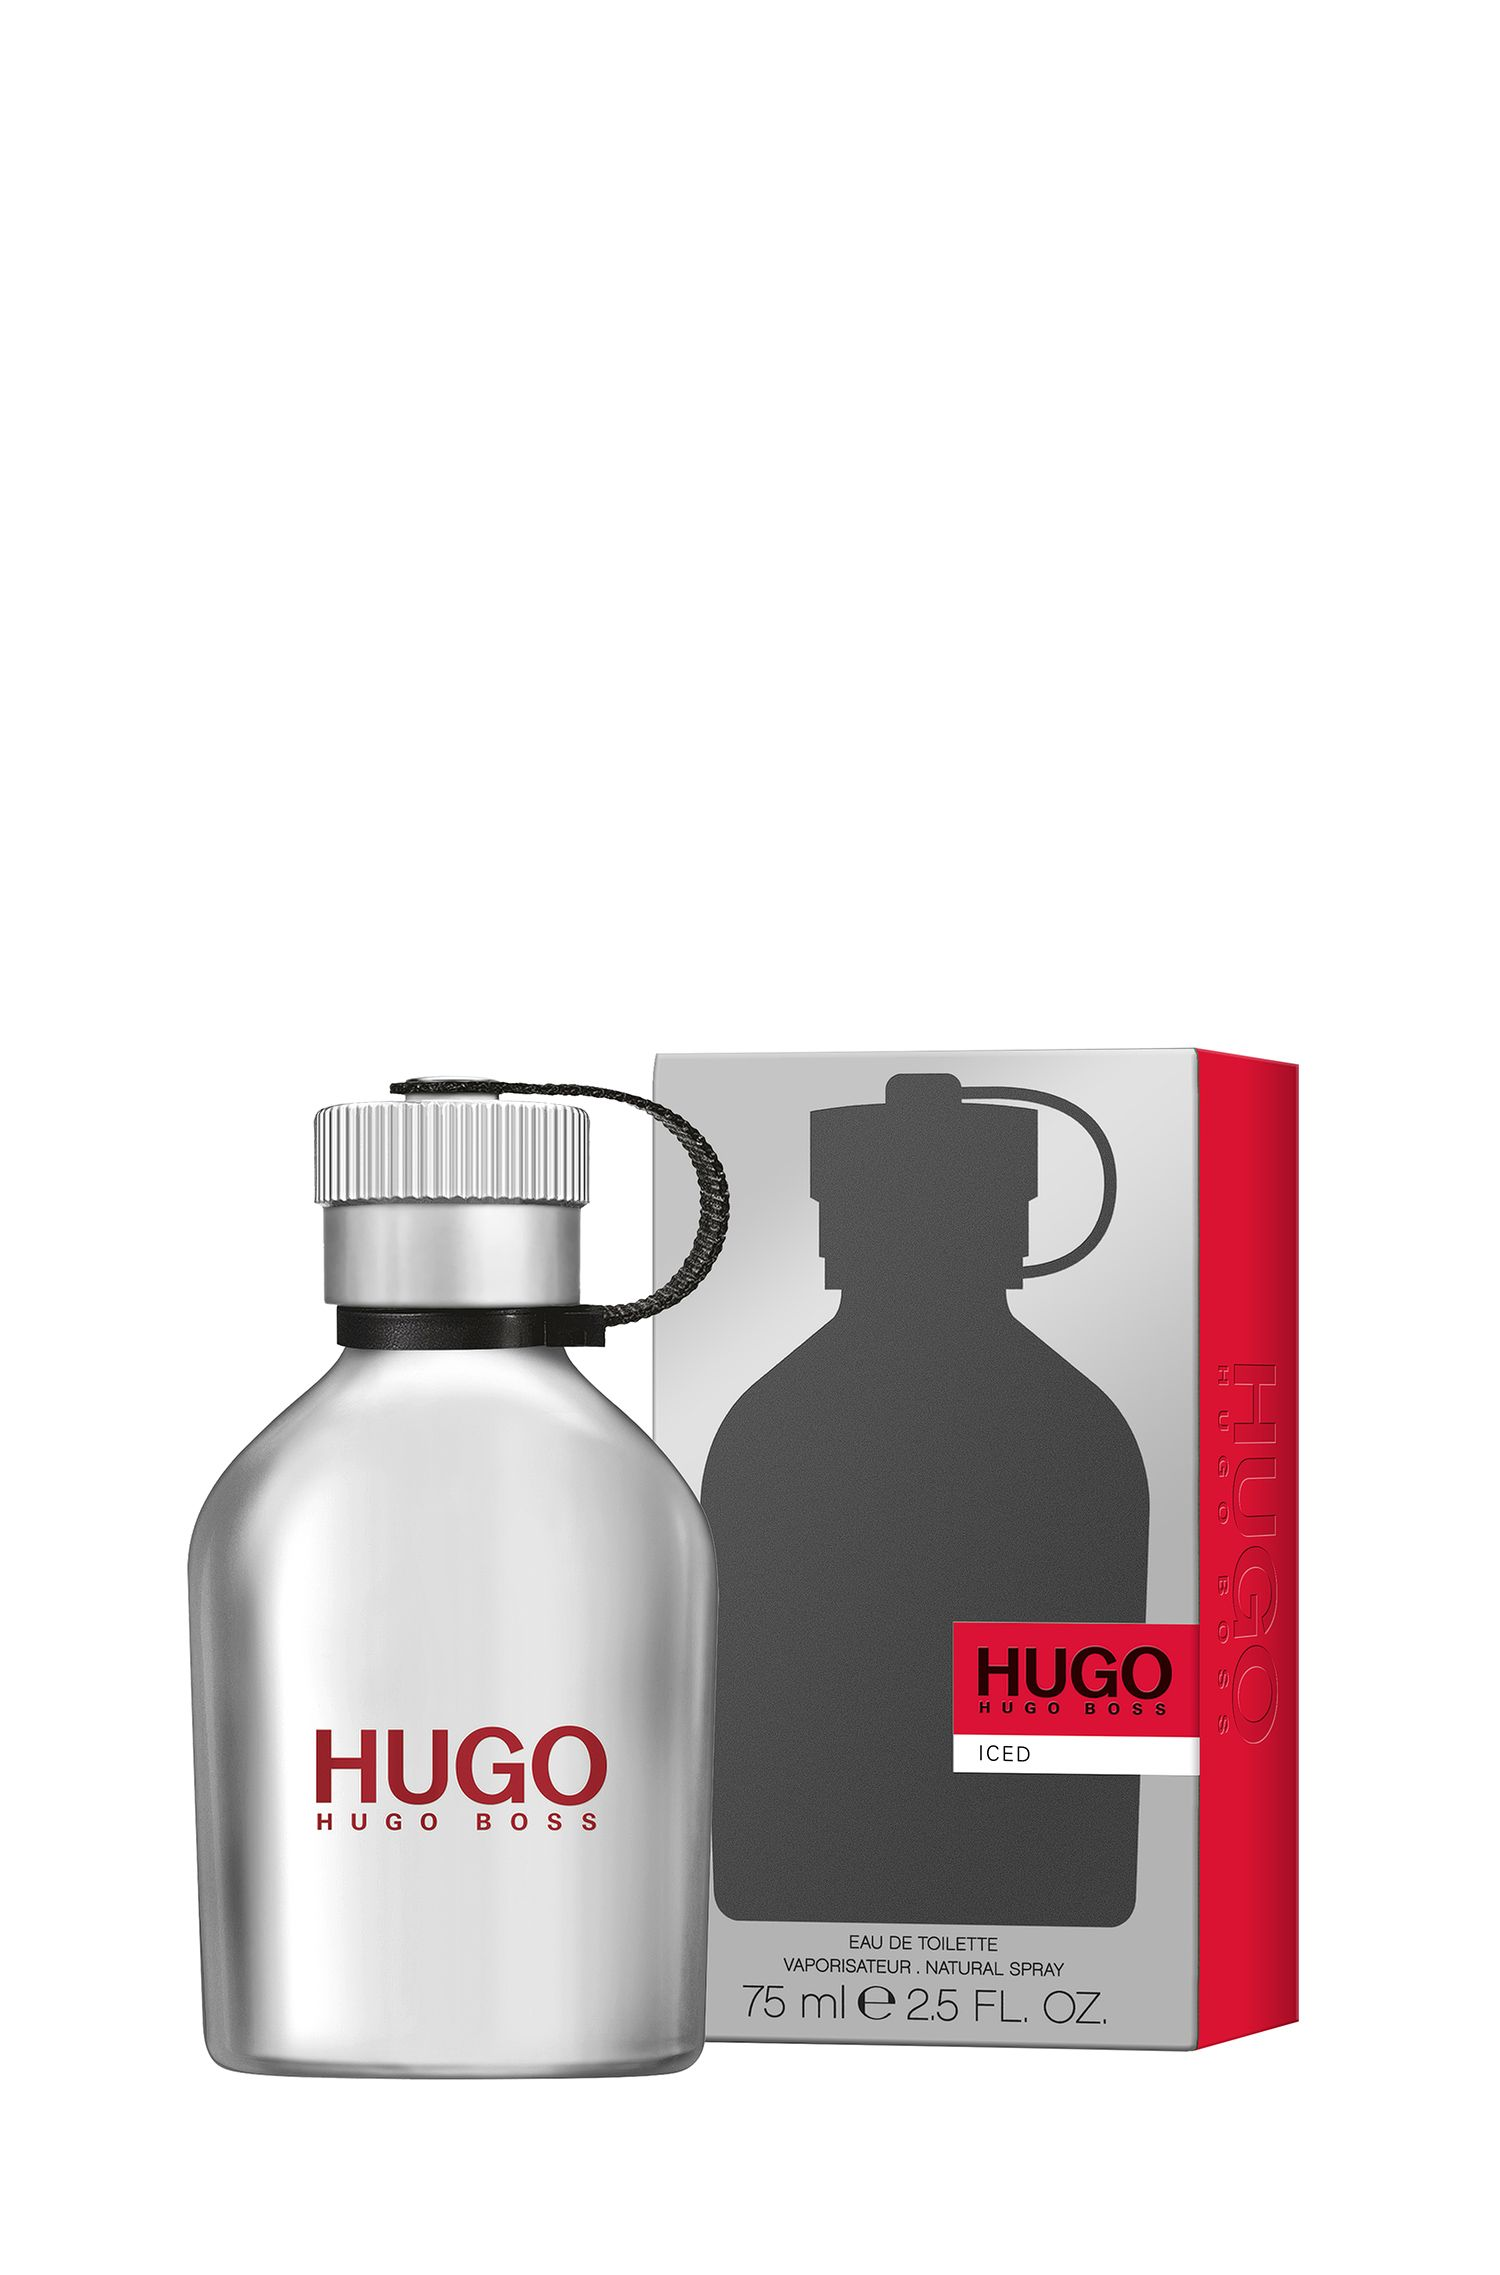 'HUGO Iced' eau de toilette 75 ml